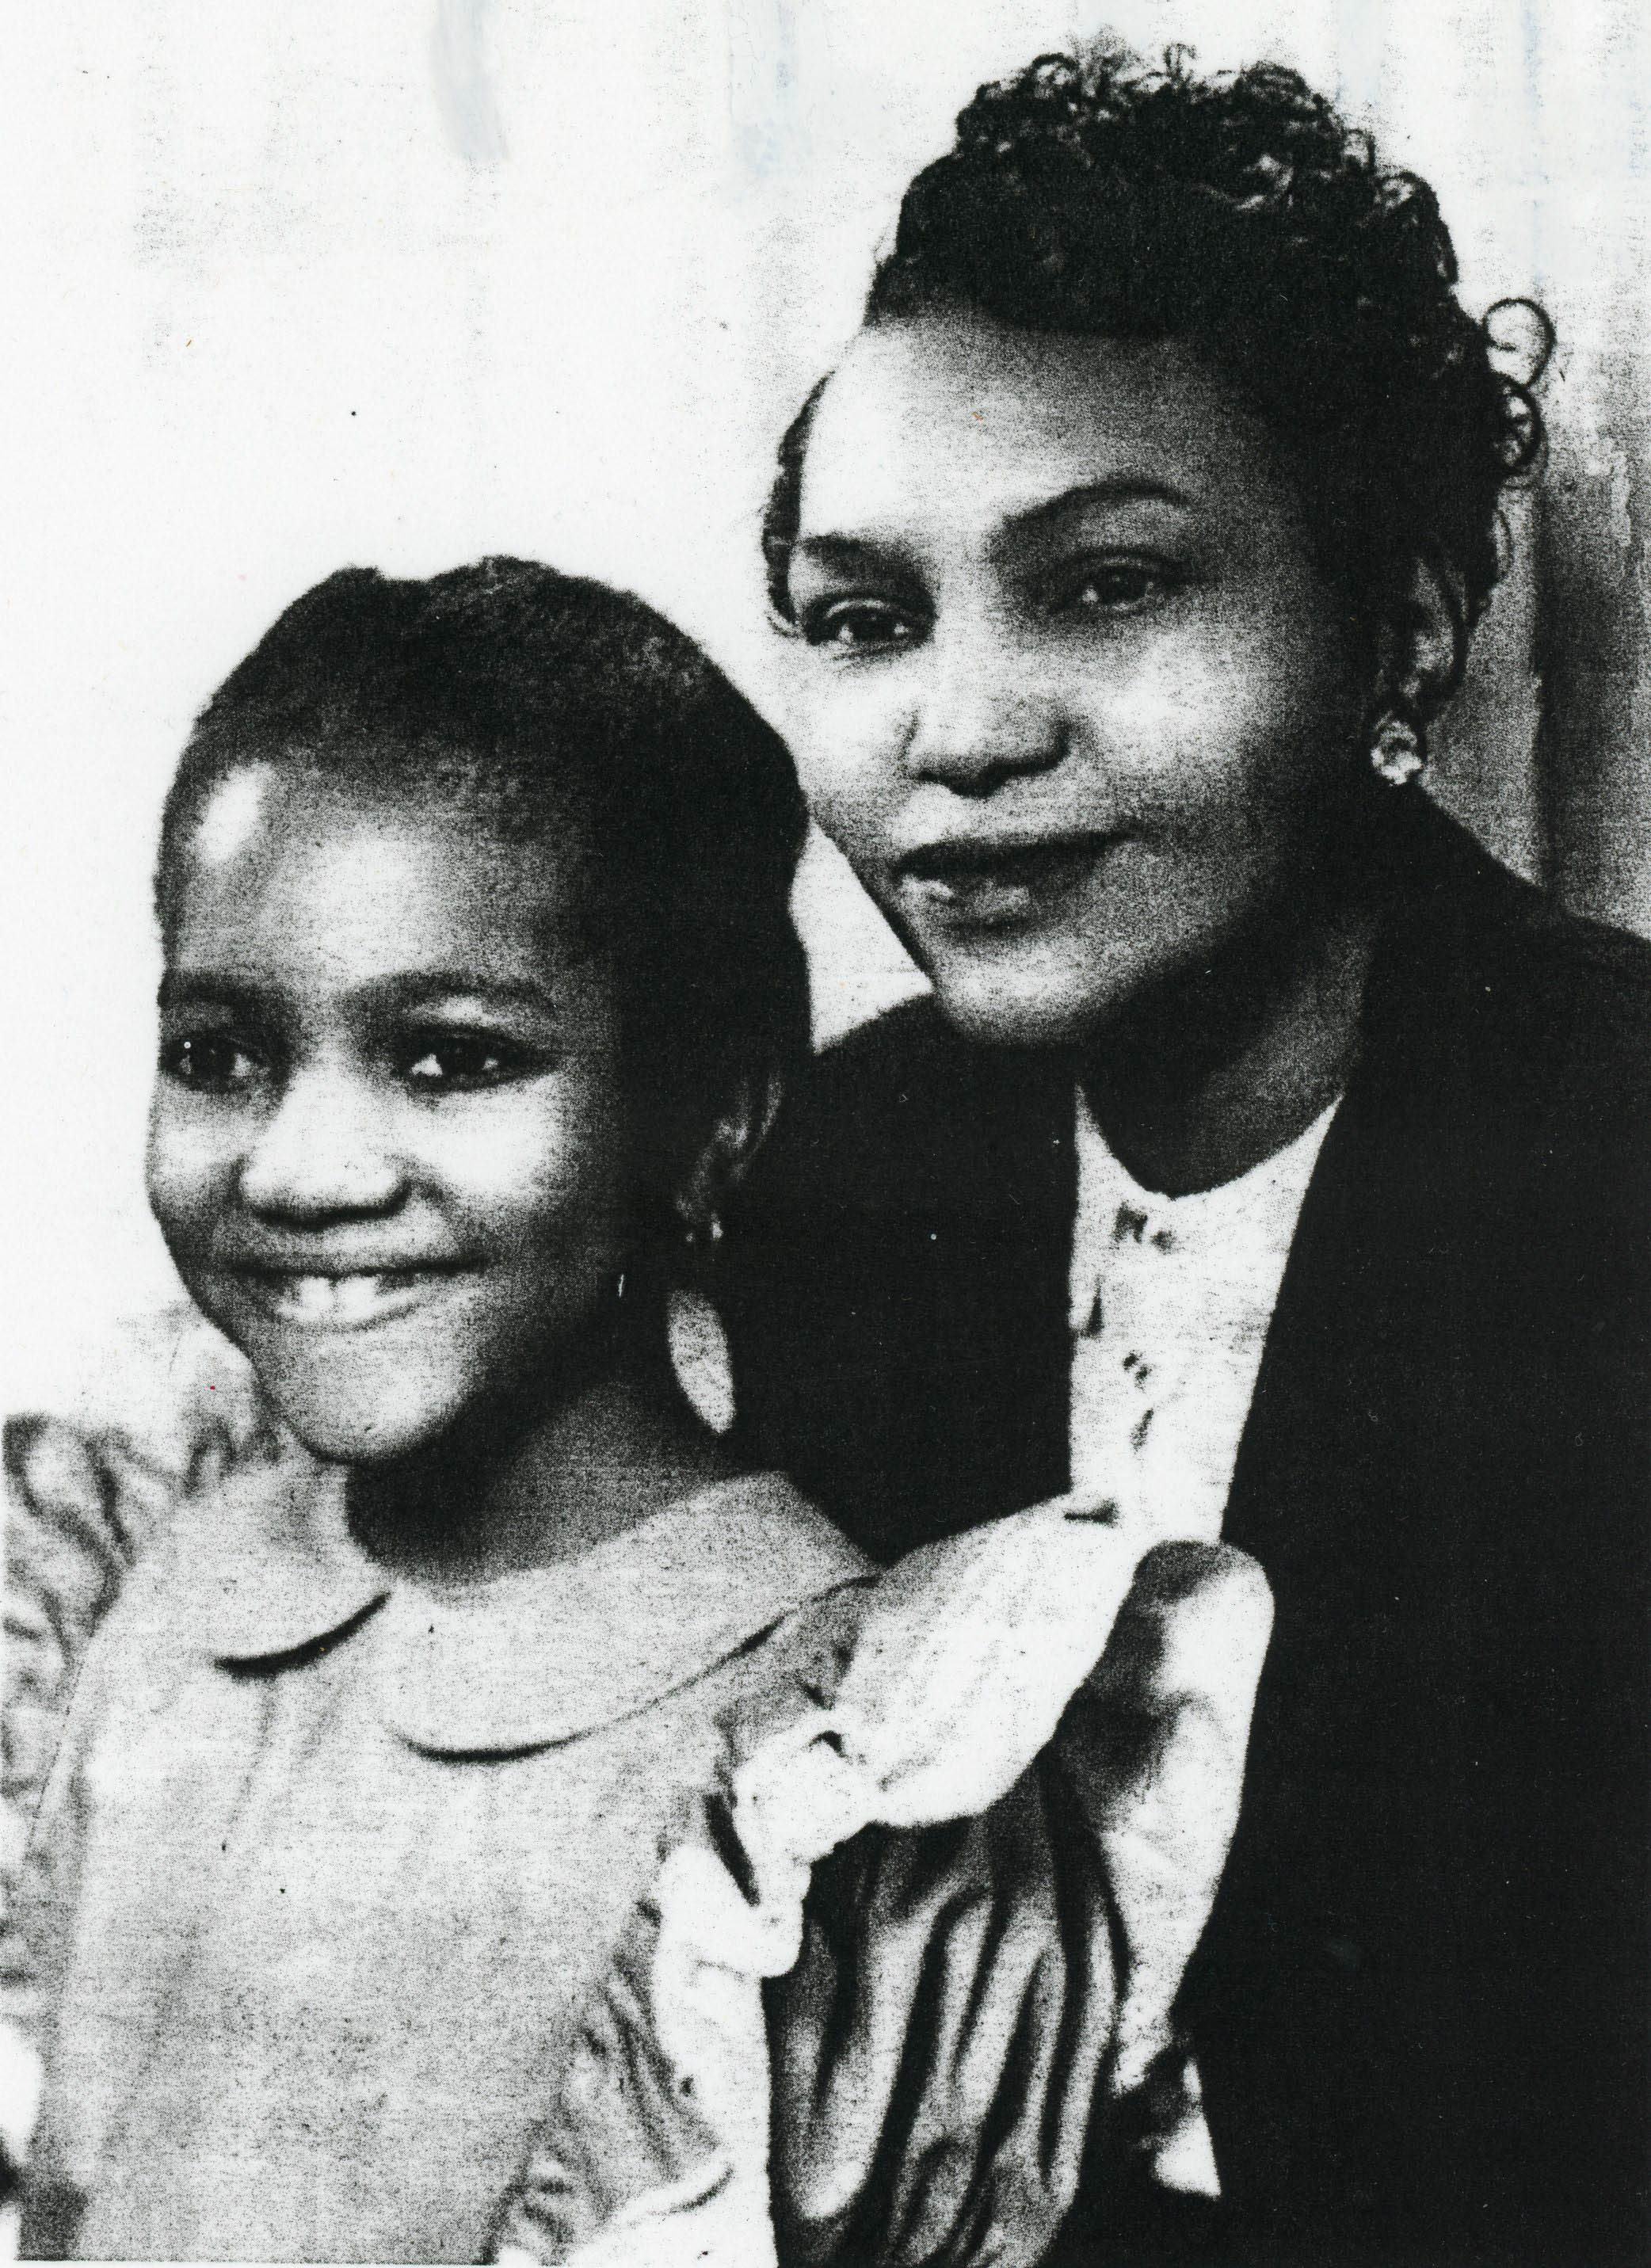 Evelyn Rumph (left) pictured with her mother, Lucy Curry, in the early 1940s. Courtesy of Evelyn Rumph.